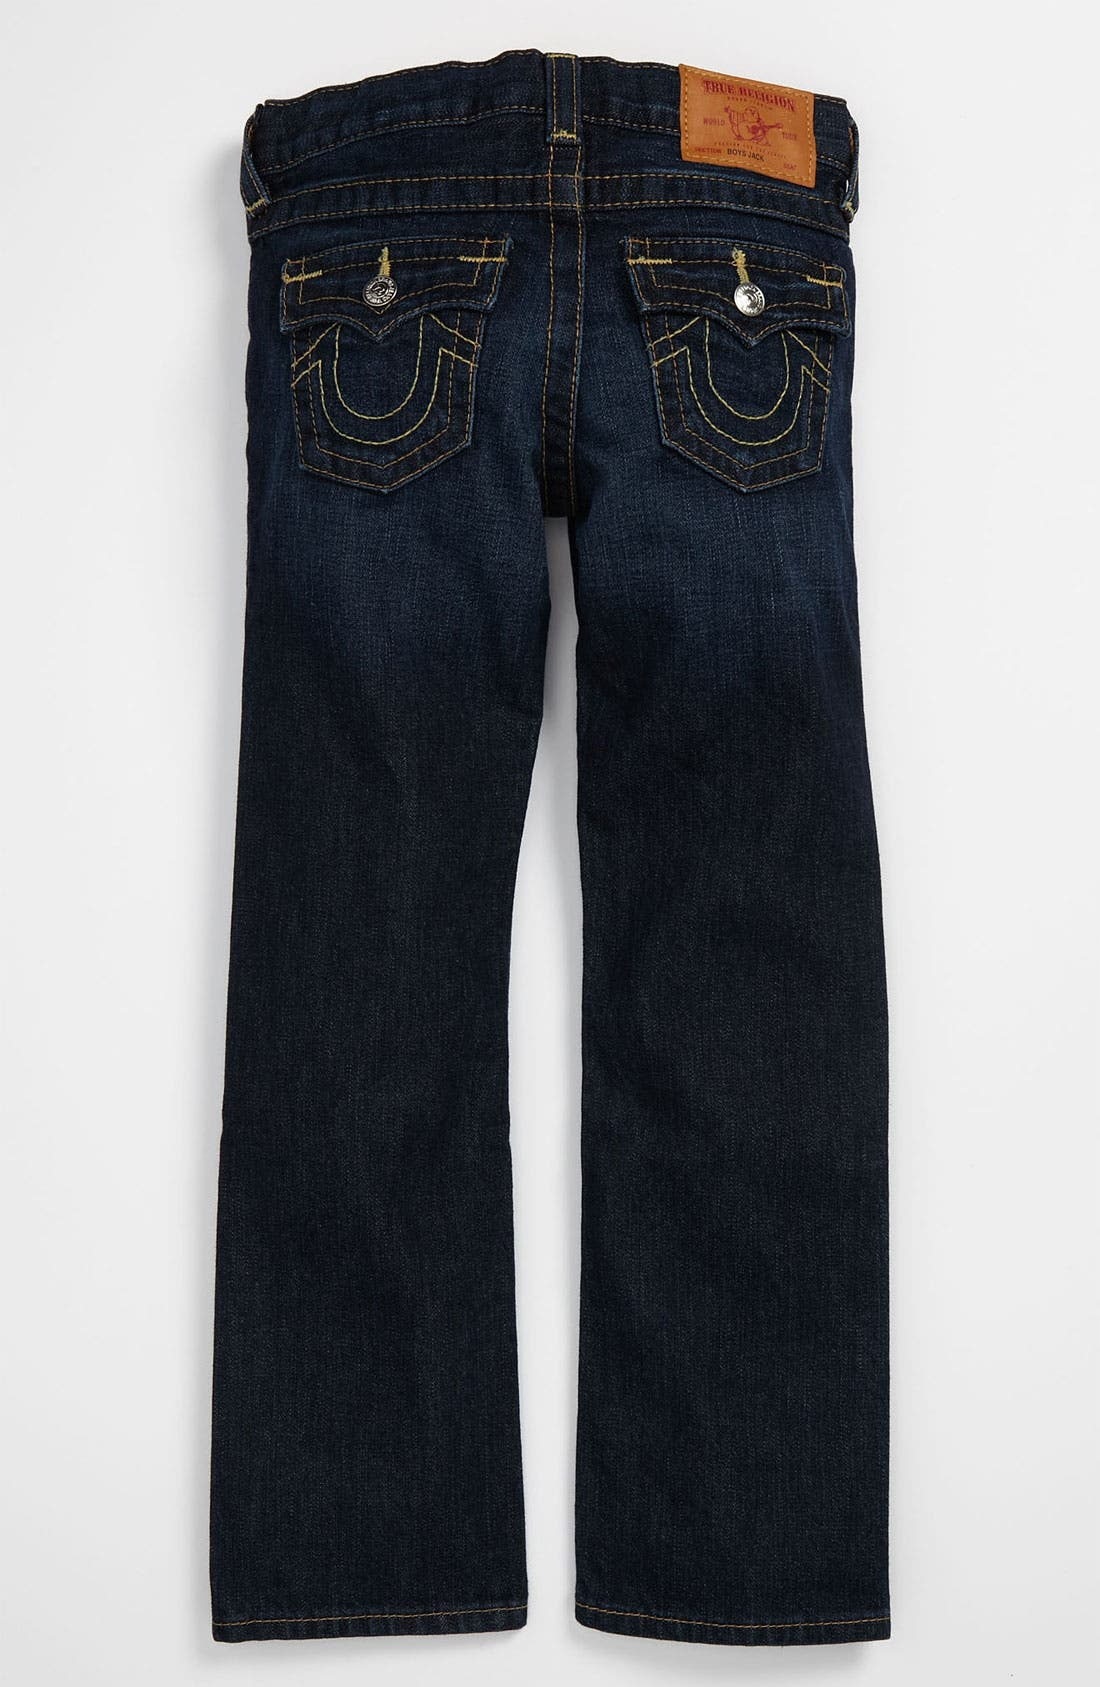 Main Image - True Religion Brand Jeans 'Jack' Straight Leg Jeans (Little Boys)